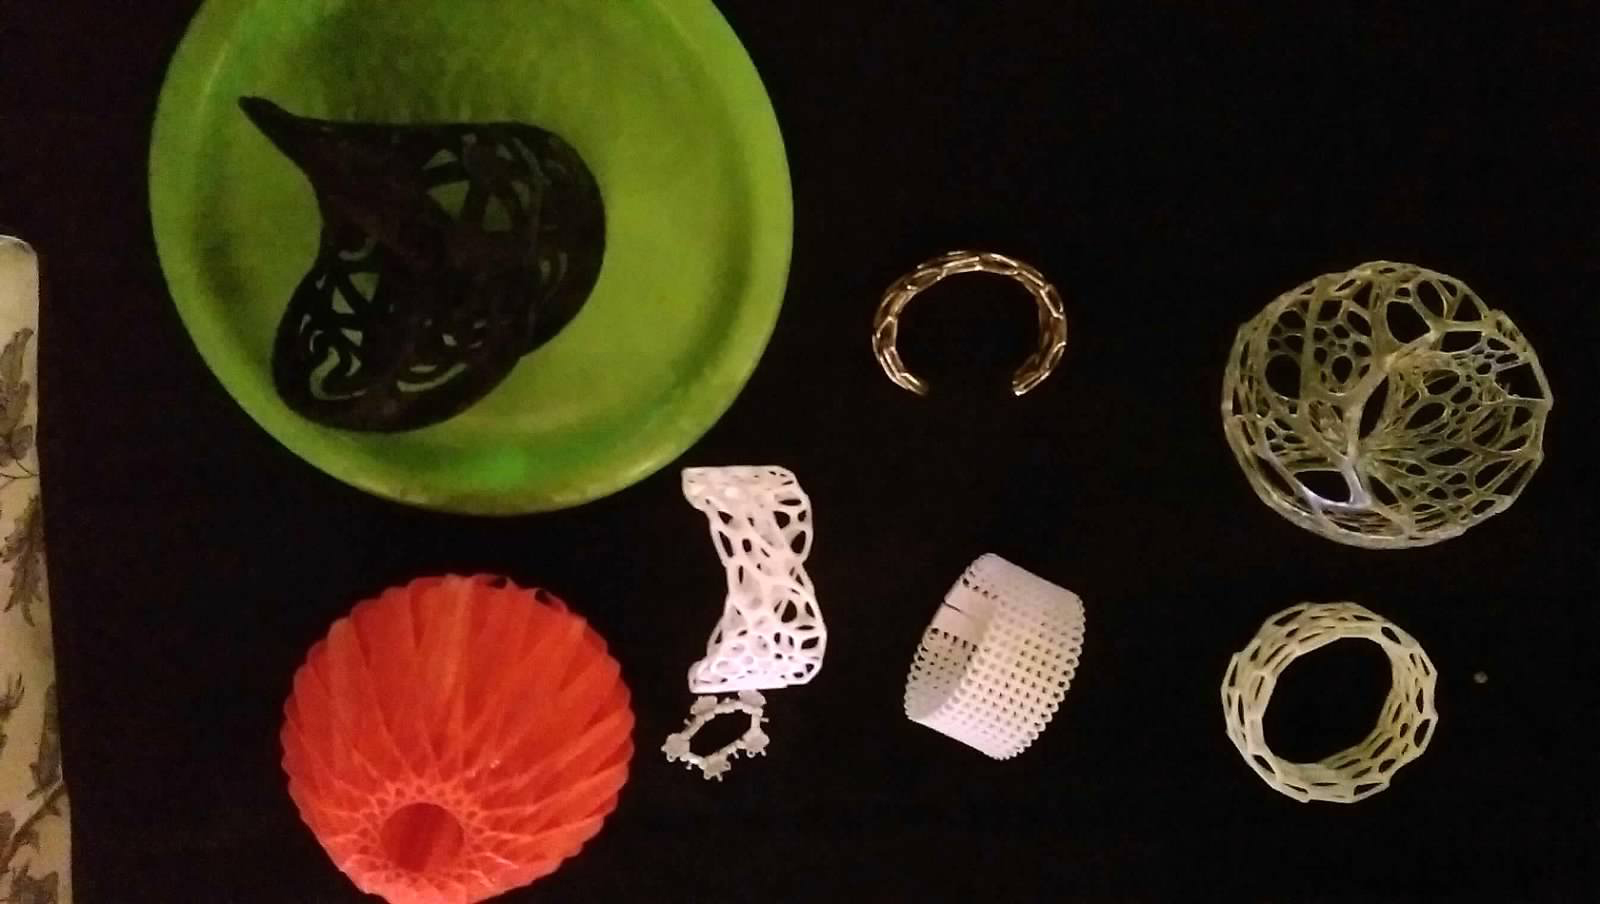 3D printed jewelry